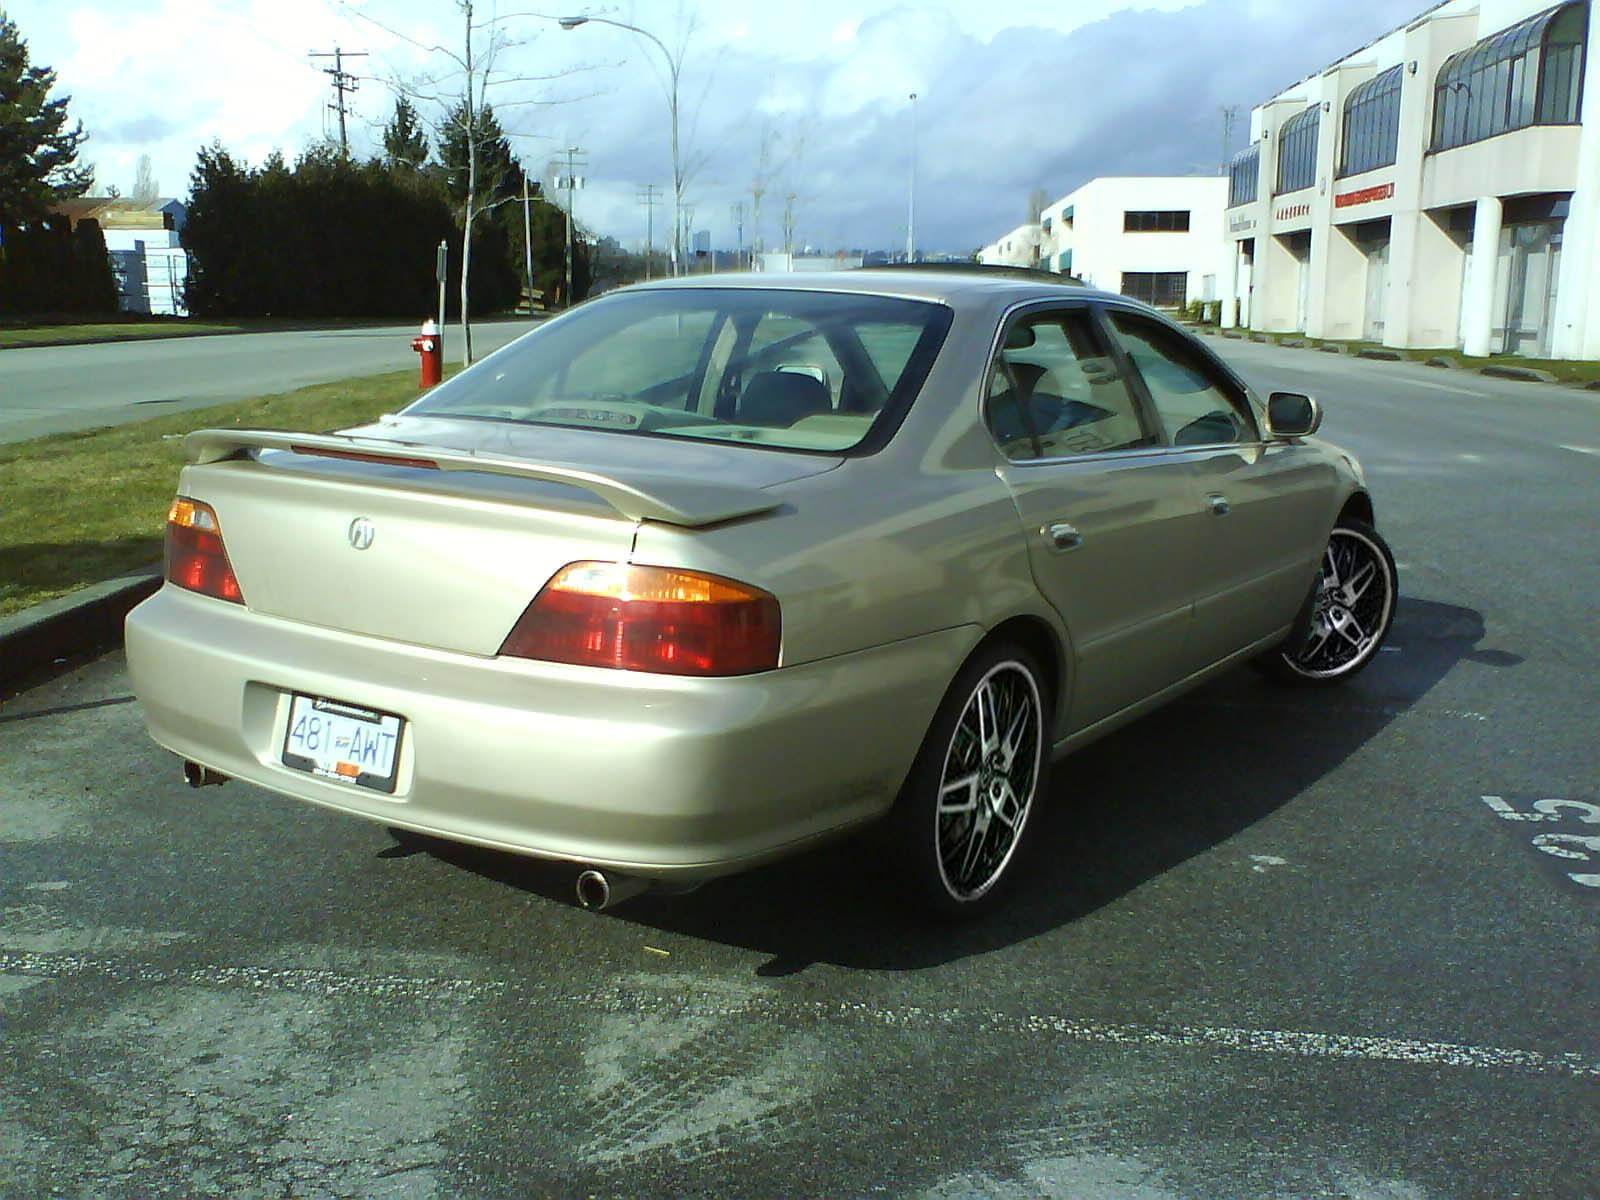 2001 Acura Tl 3 2 >> Farhaazk 2001 Acura Tl3 2 Sedan 4d Specs Photos Modification Info